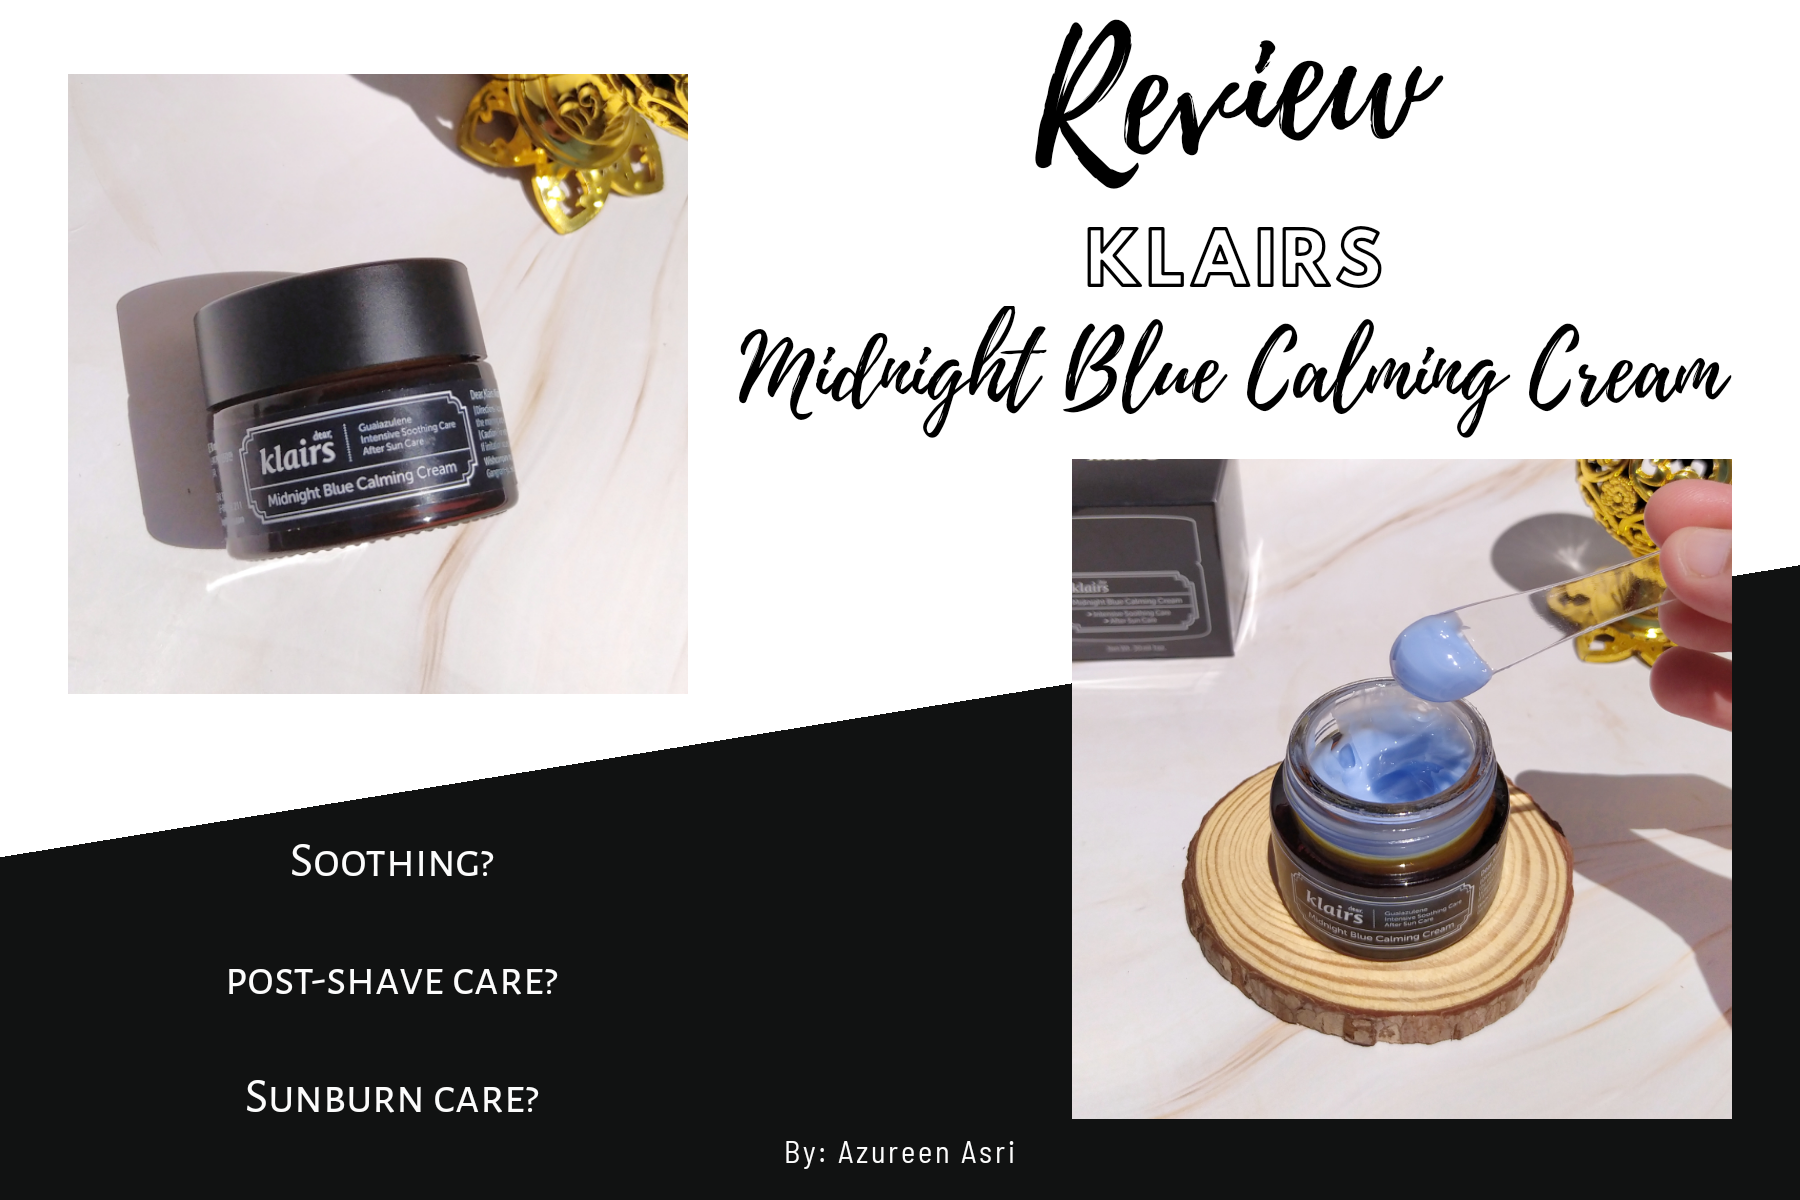 Soothe Skin with Klairs Midnight Blue Calming Cream